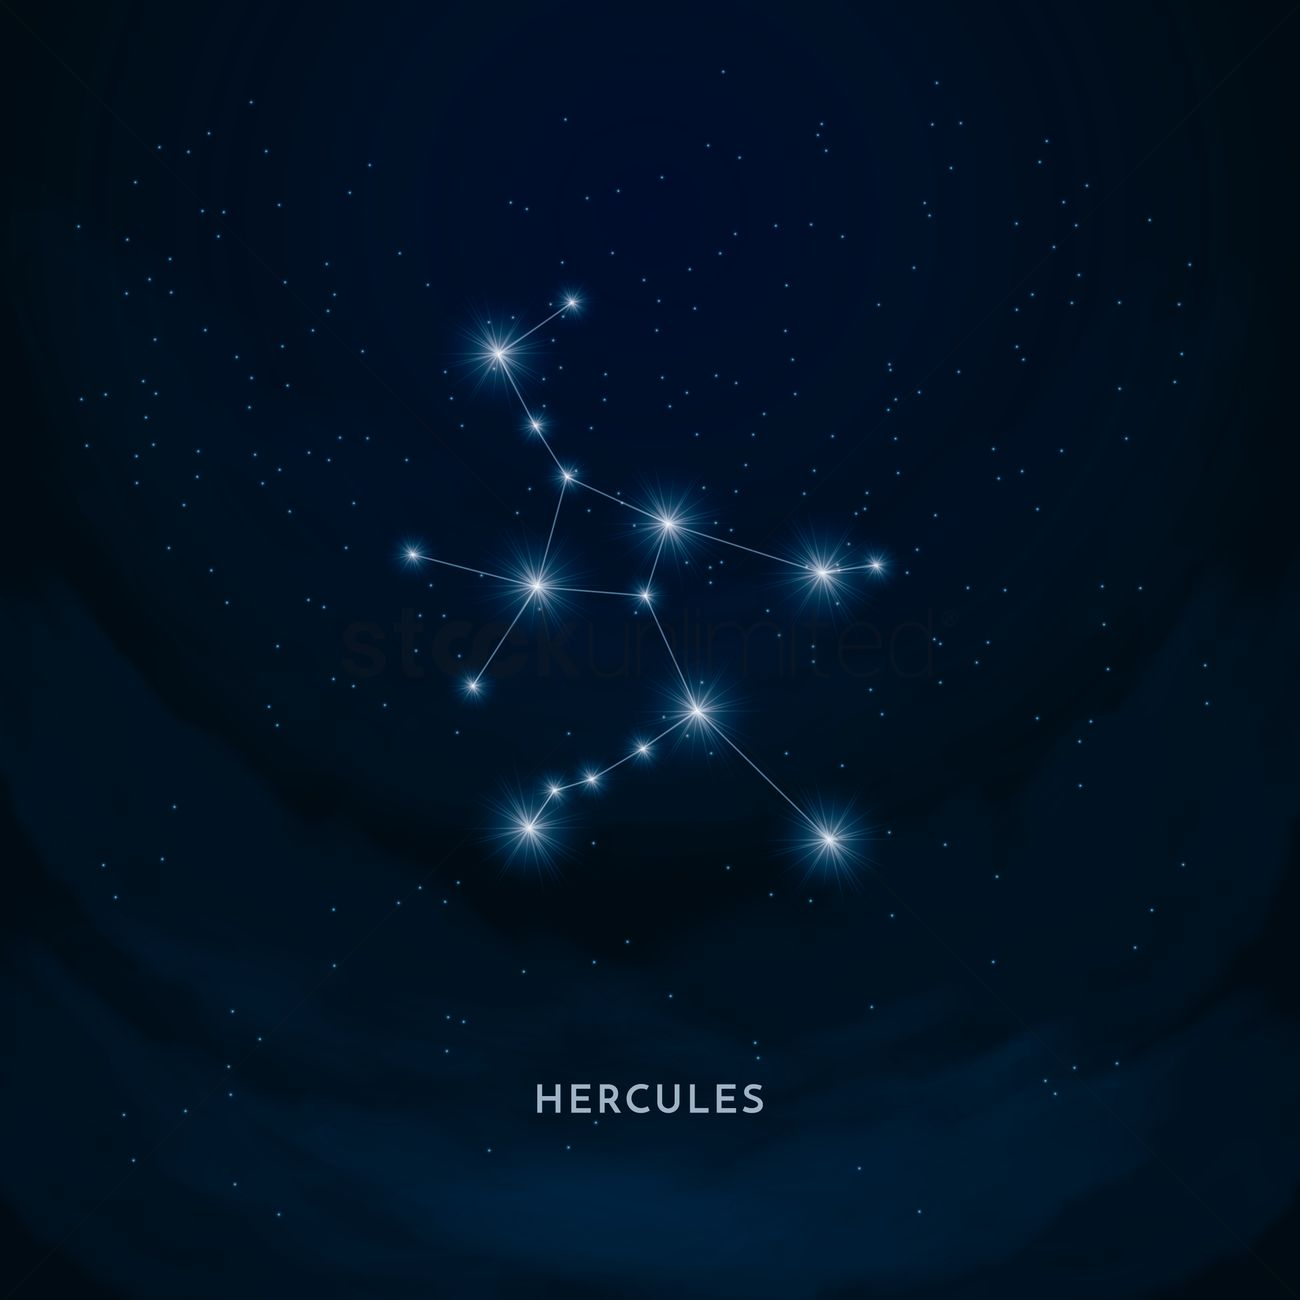 Hercules Constellation Vector Image 1555403 Stockunlimited